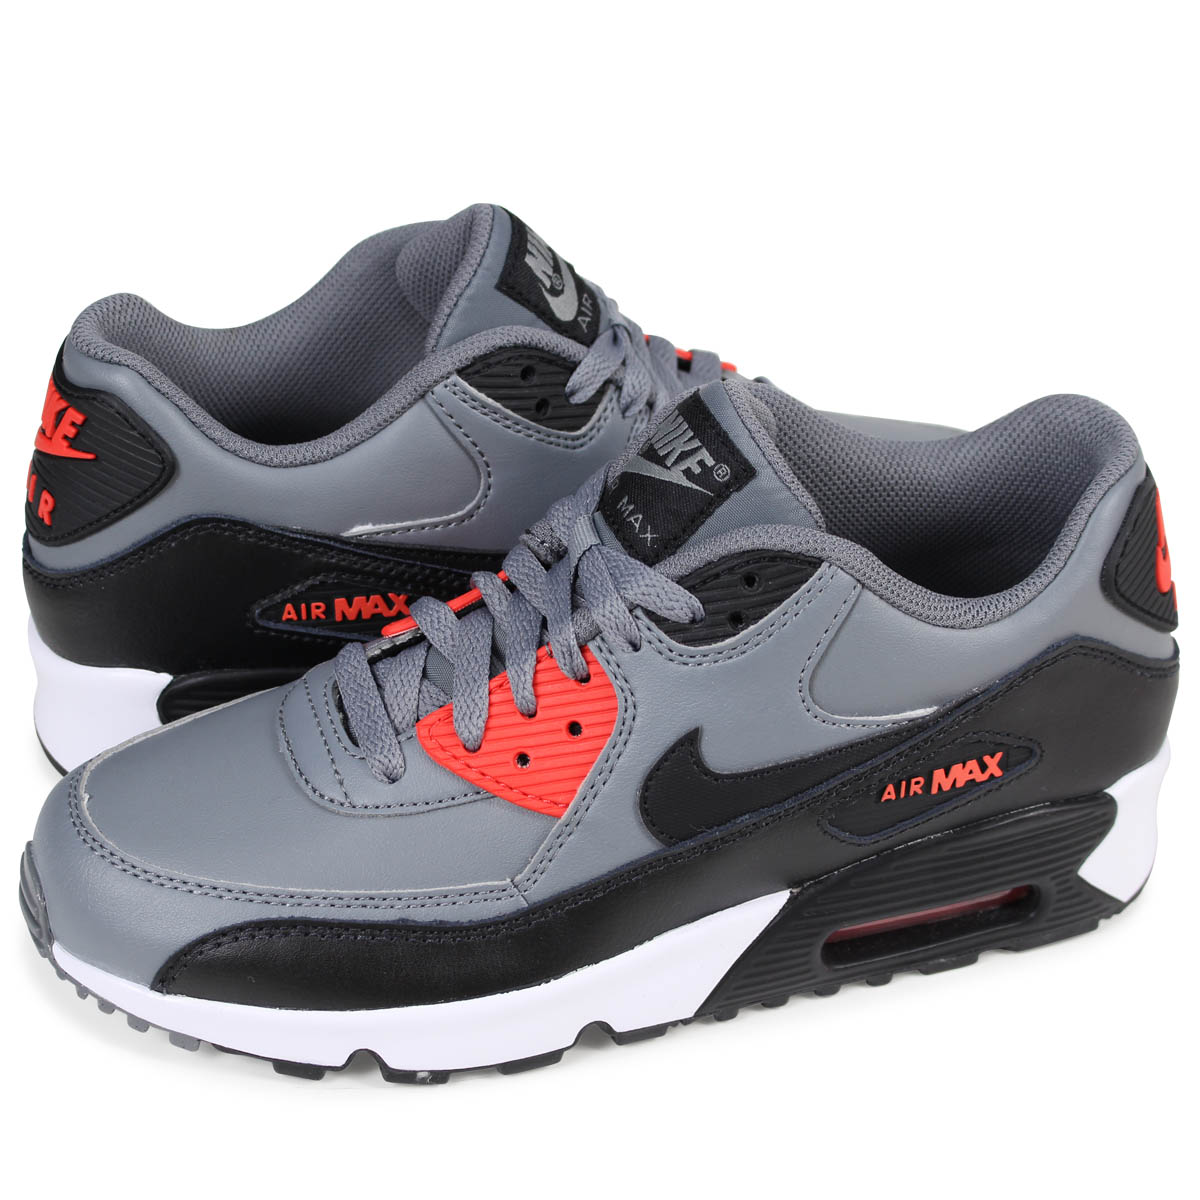 brand new 2f903 f3d6e wholesale nike air max 90 leather grey 25cc8 1d9f4